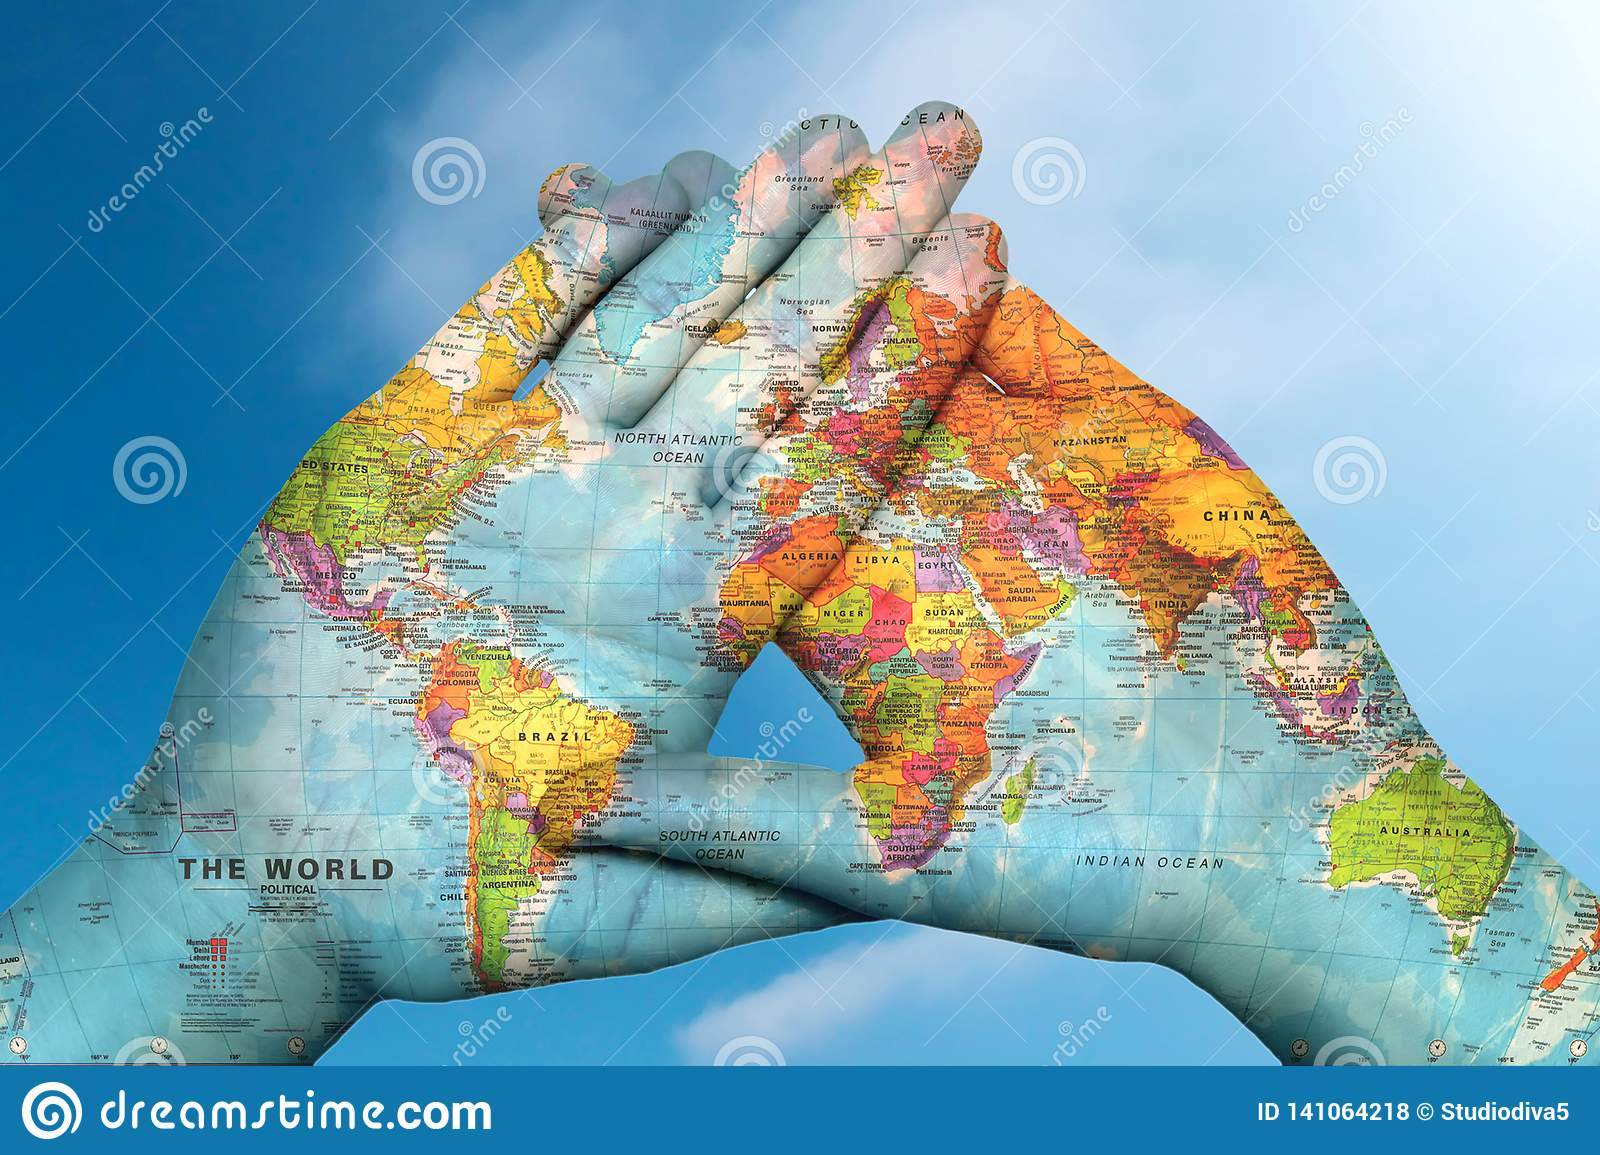 World map in hands against the sky